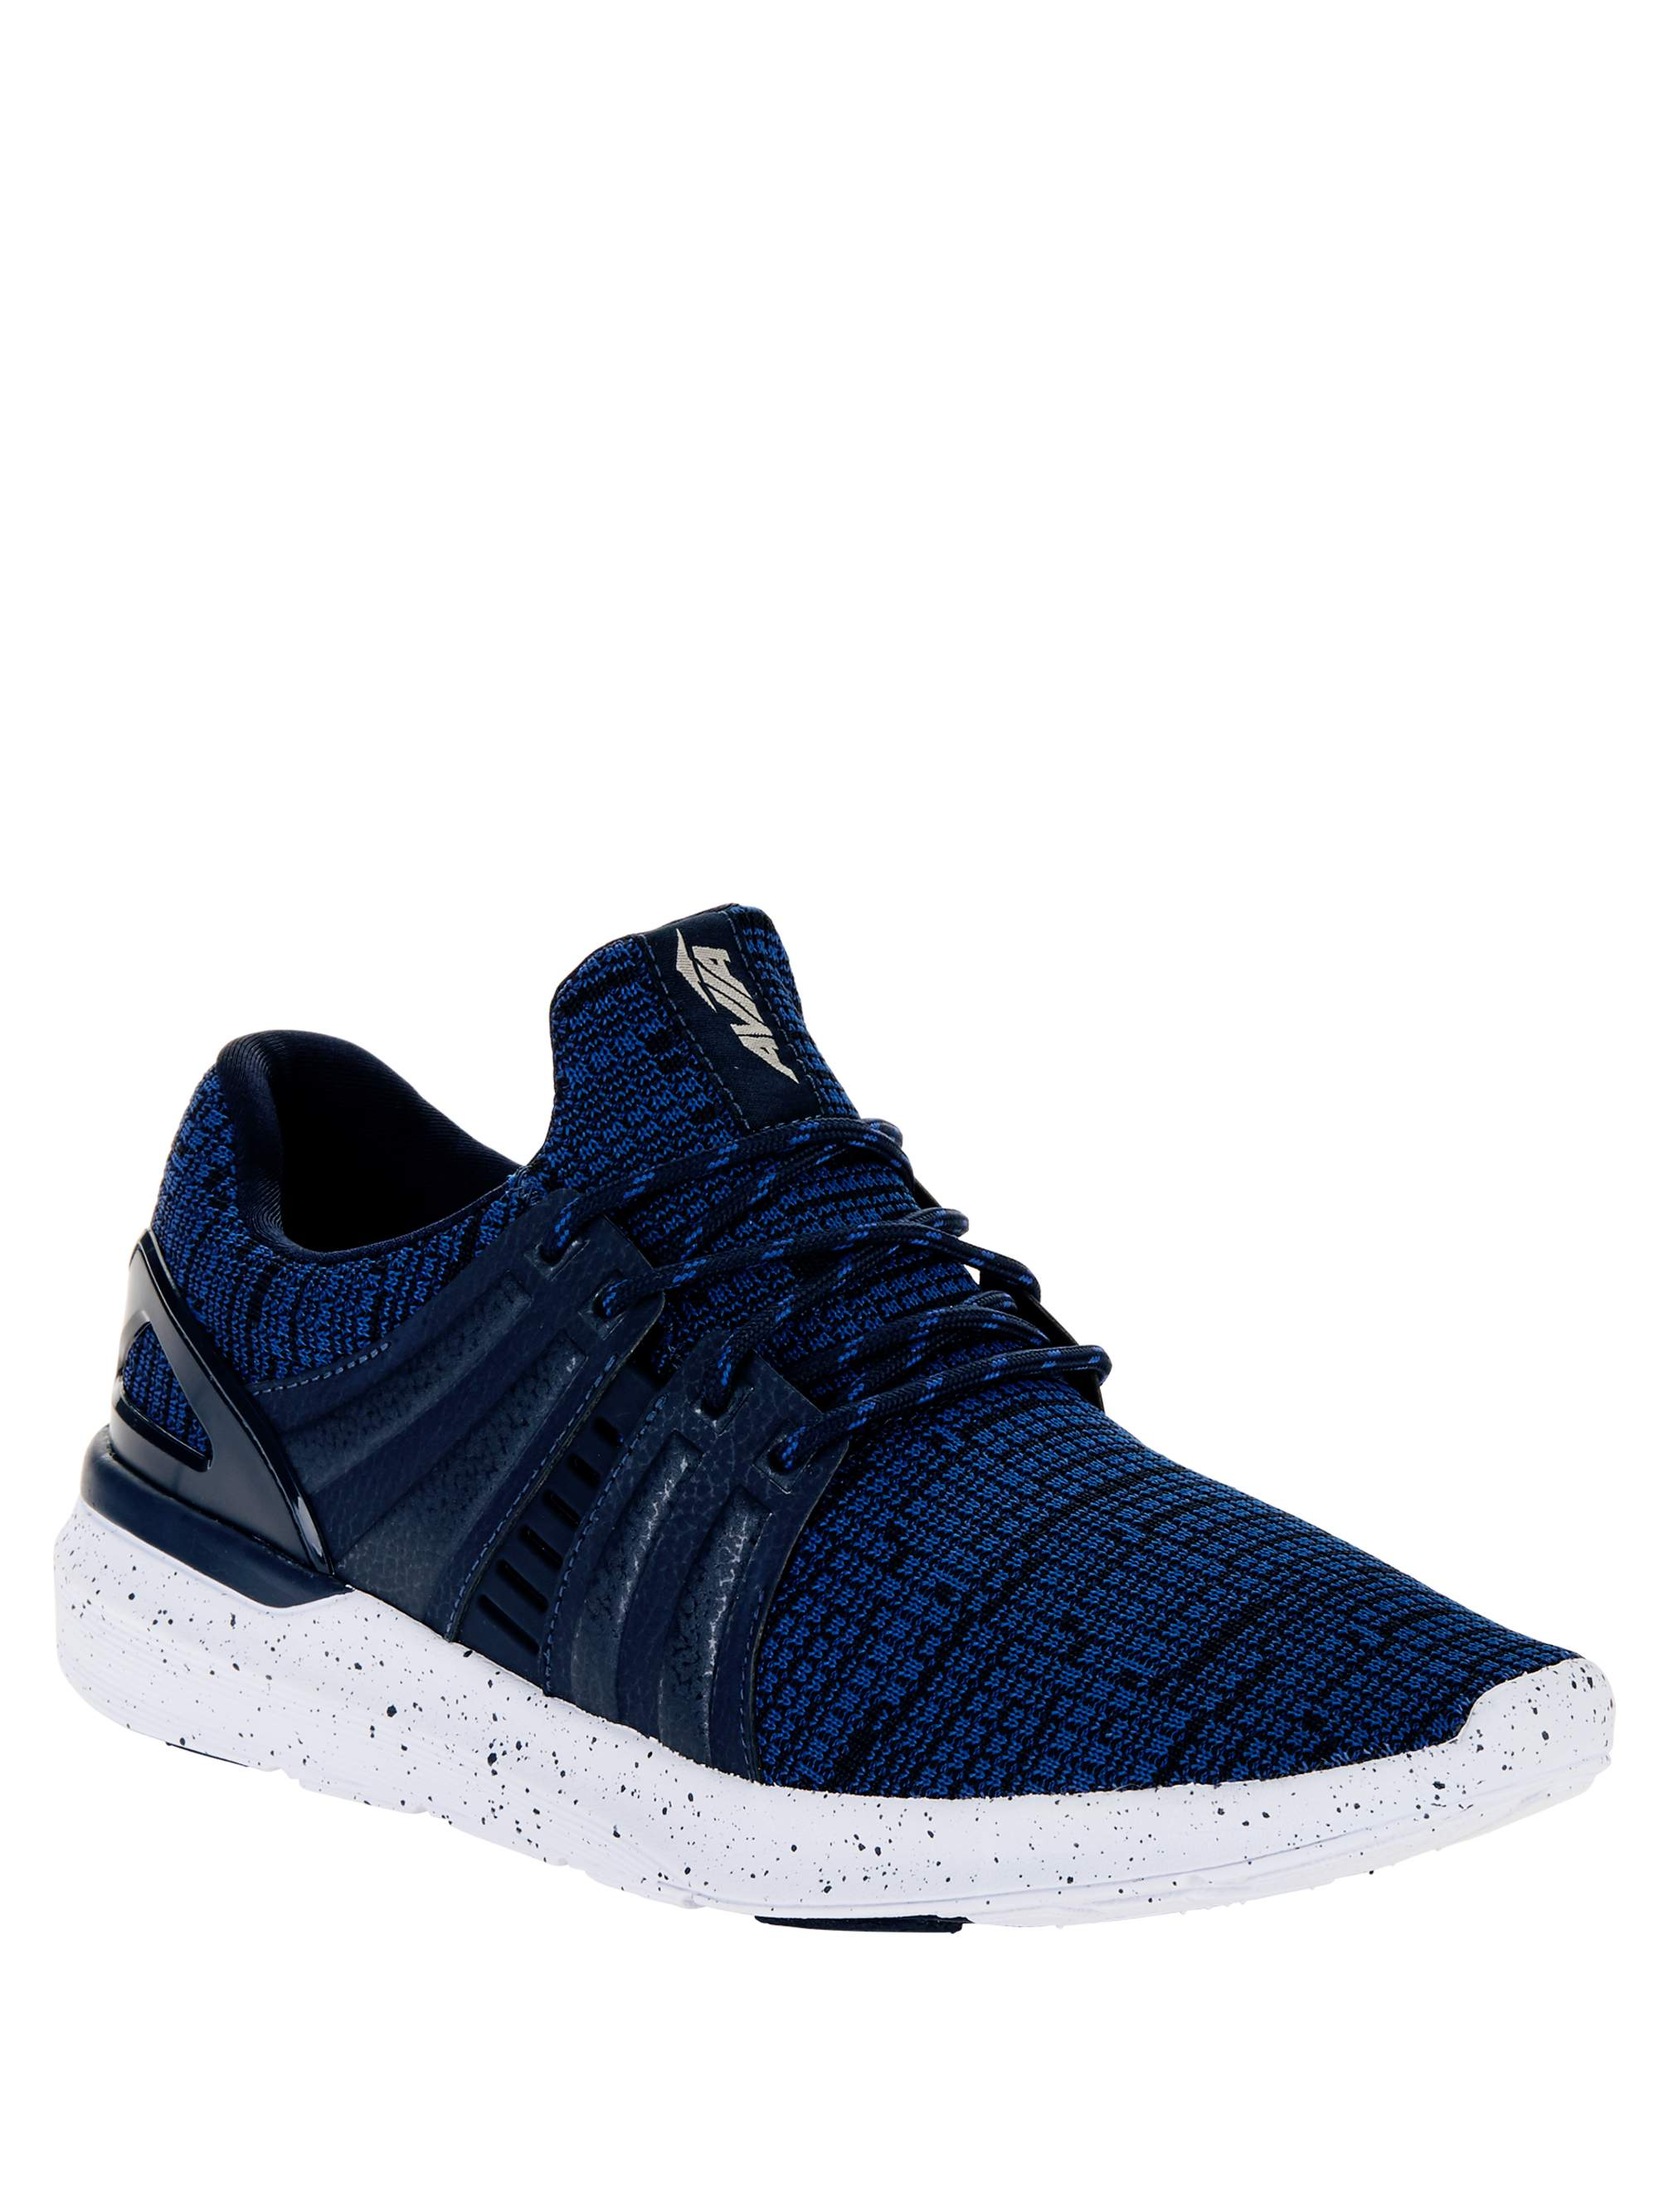 Caged Knit Athletic Shoes